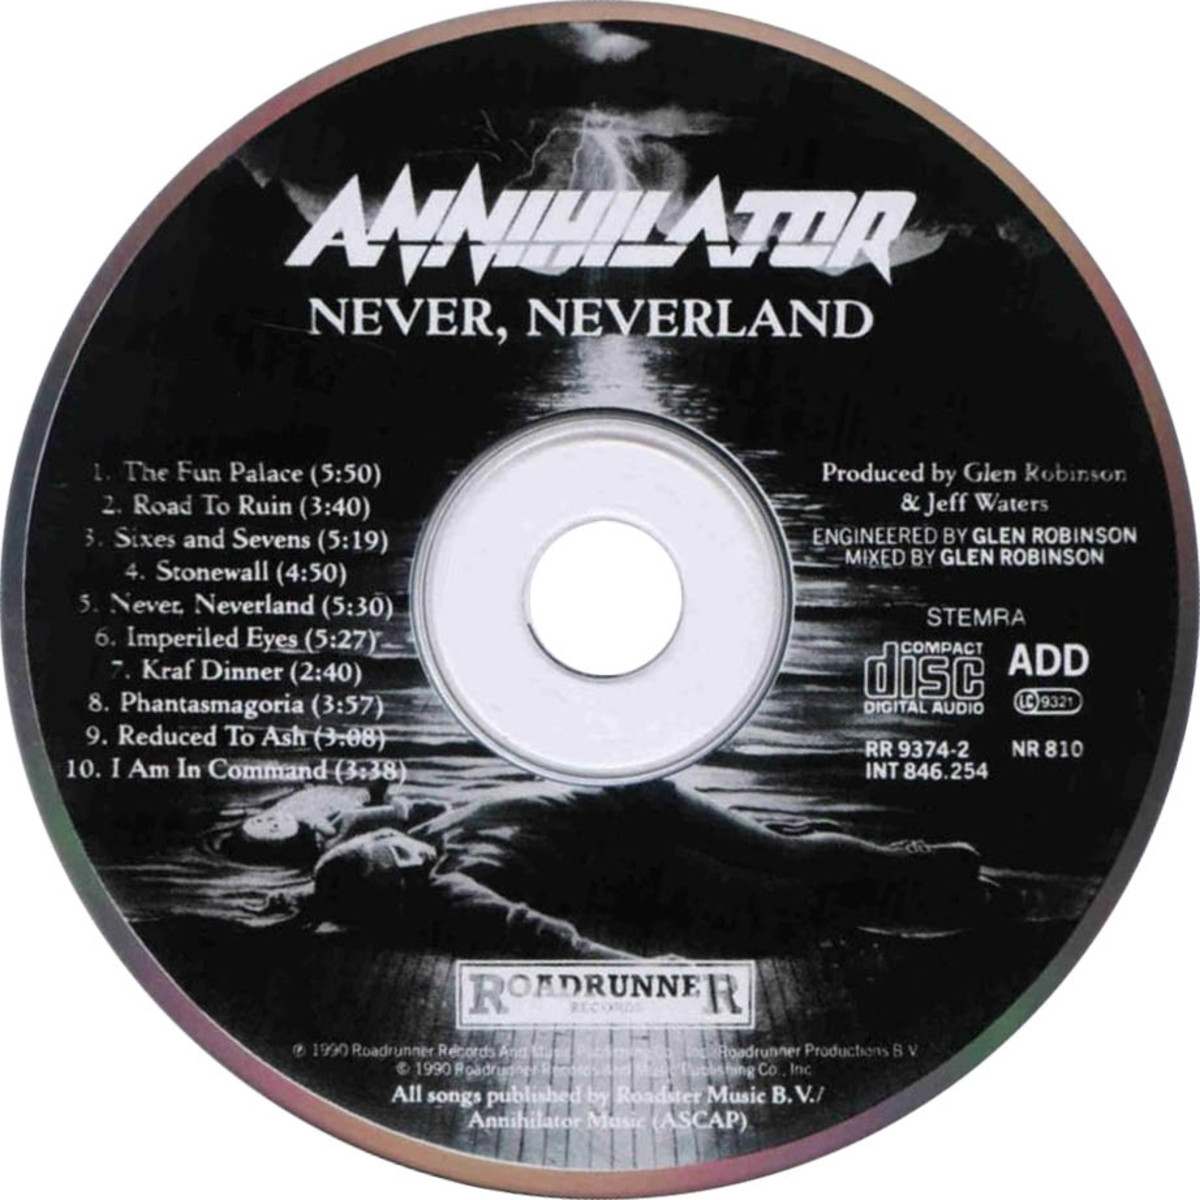 Annihilator's Never Neverland album is one of the finest in the heavy metal genre containing 10 high quality songs.